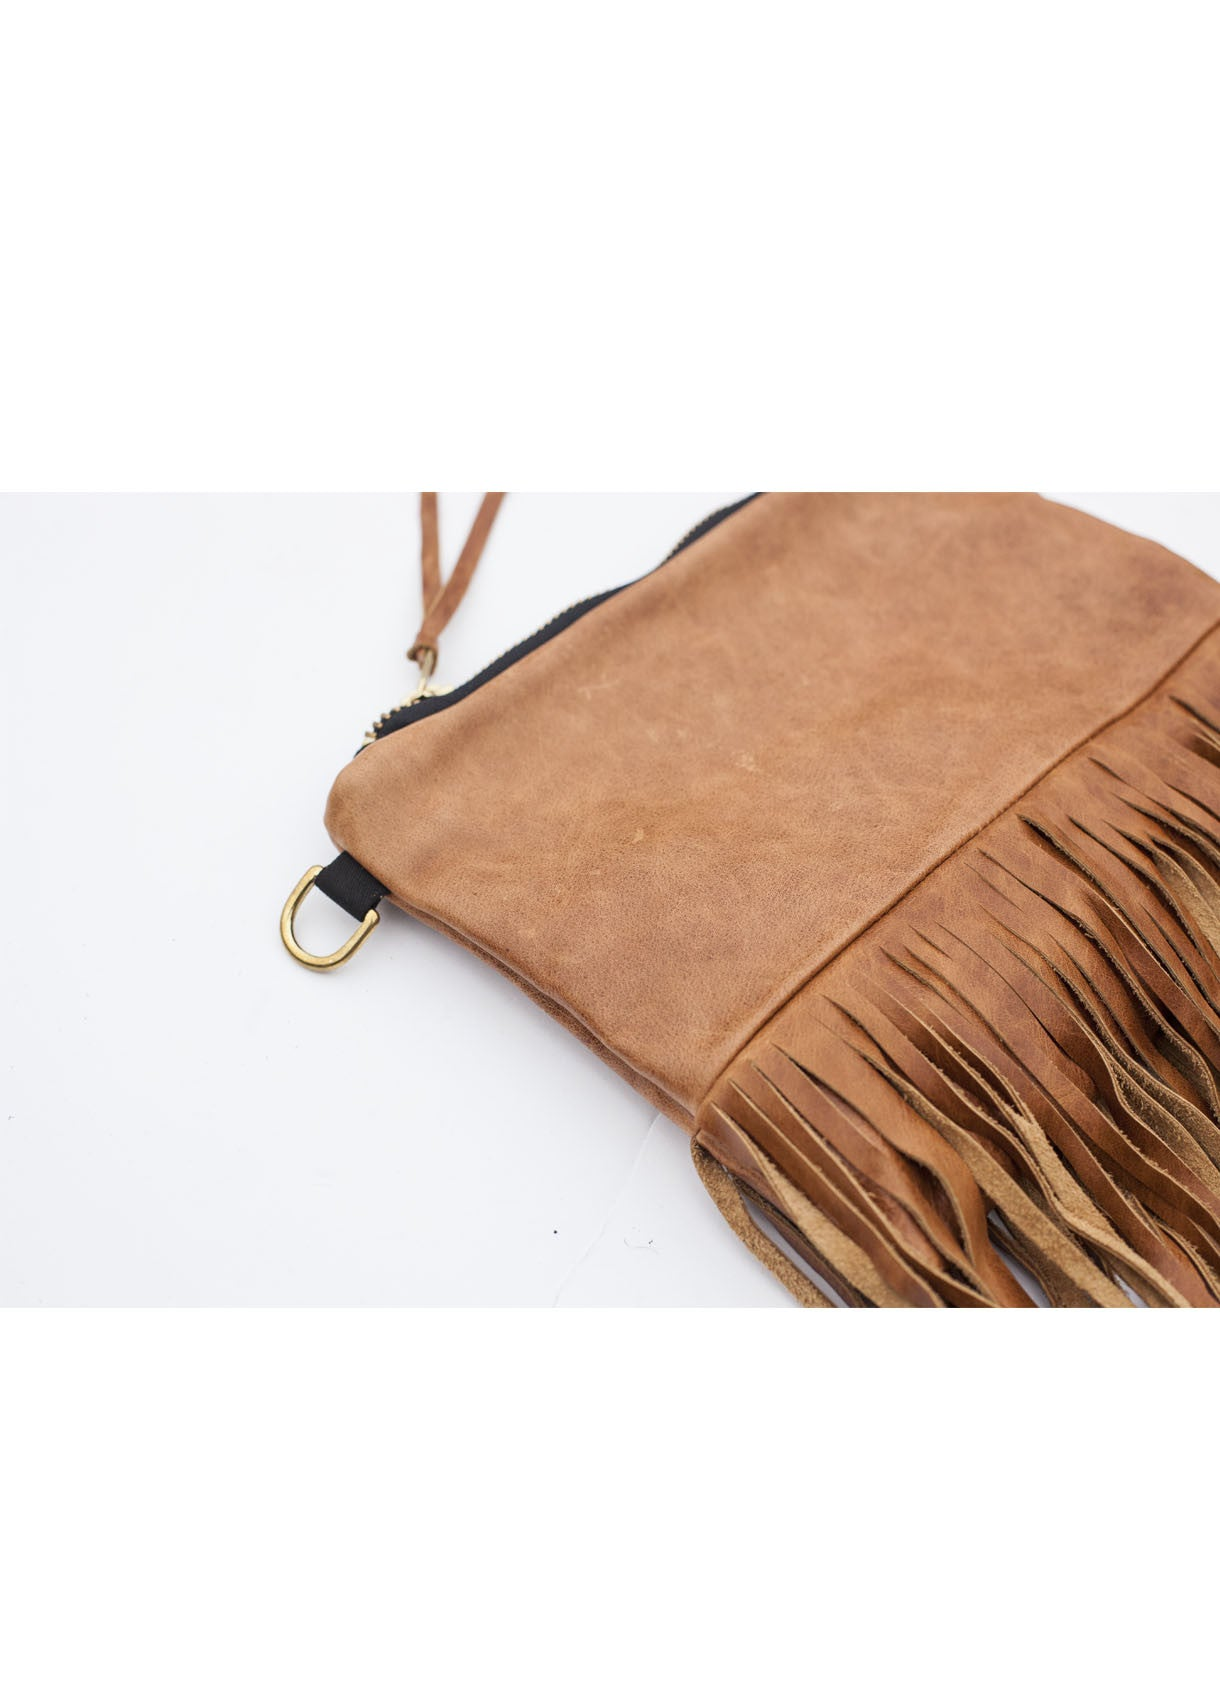 KOKO DOUBLE FRINGE VIDA / 3 in 1 bag